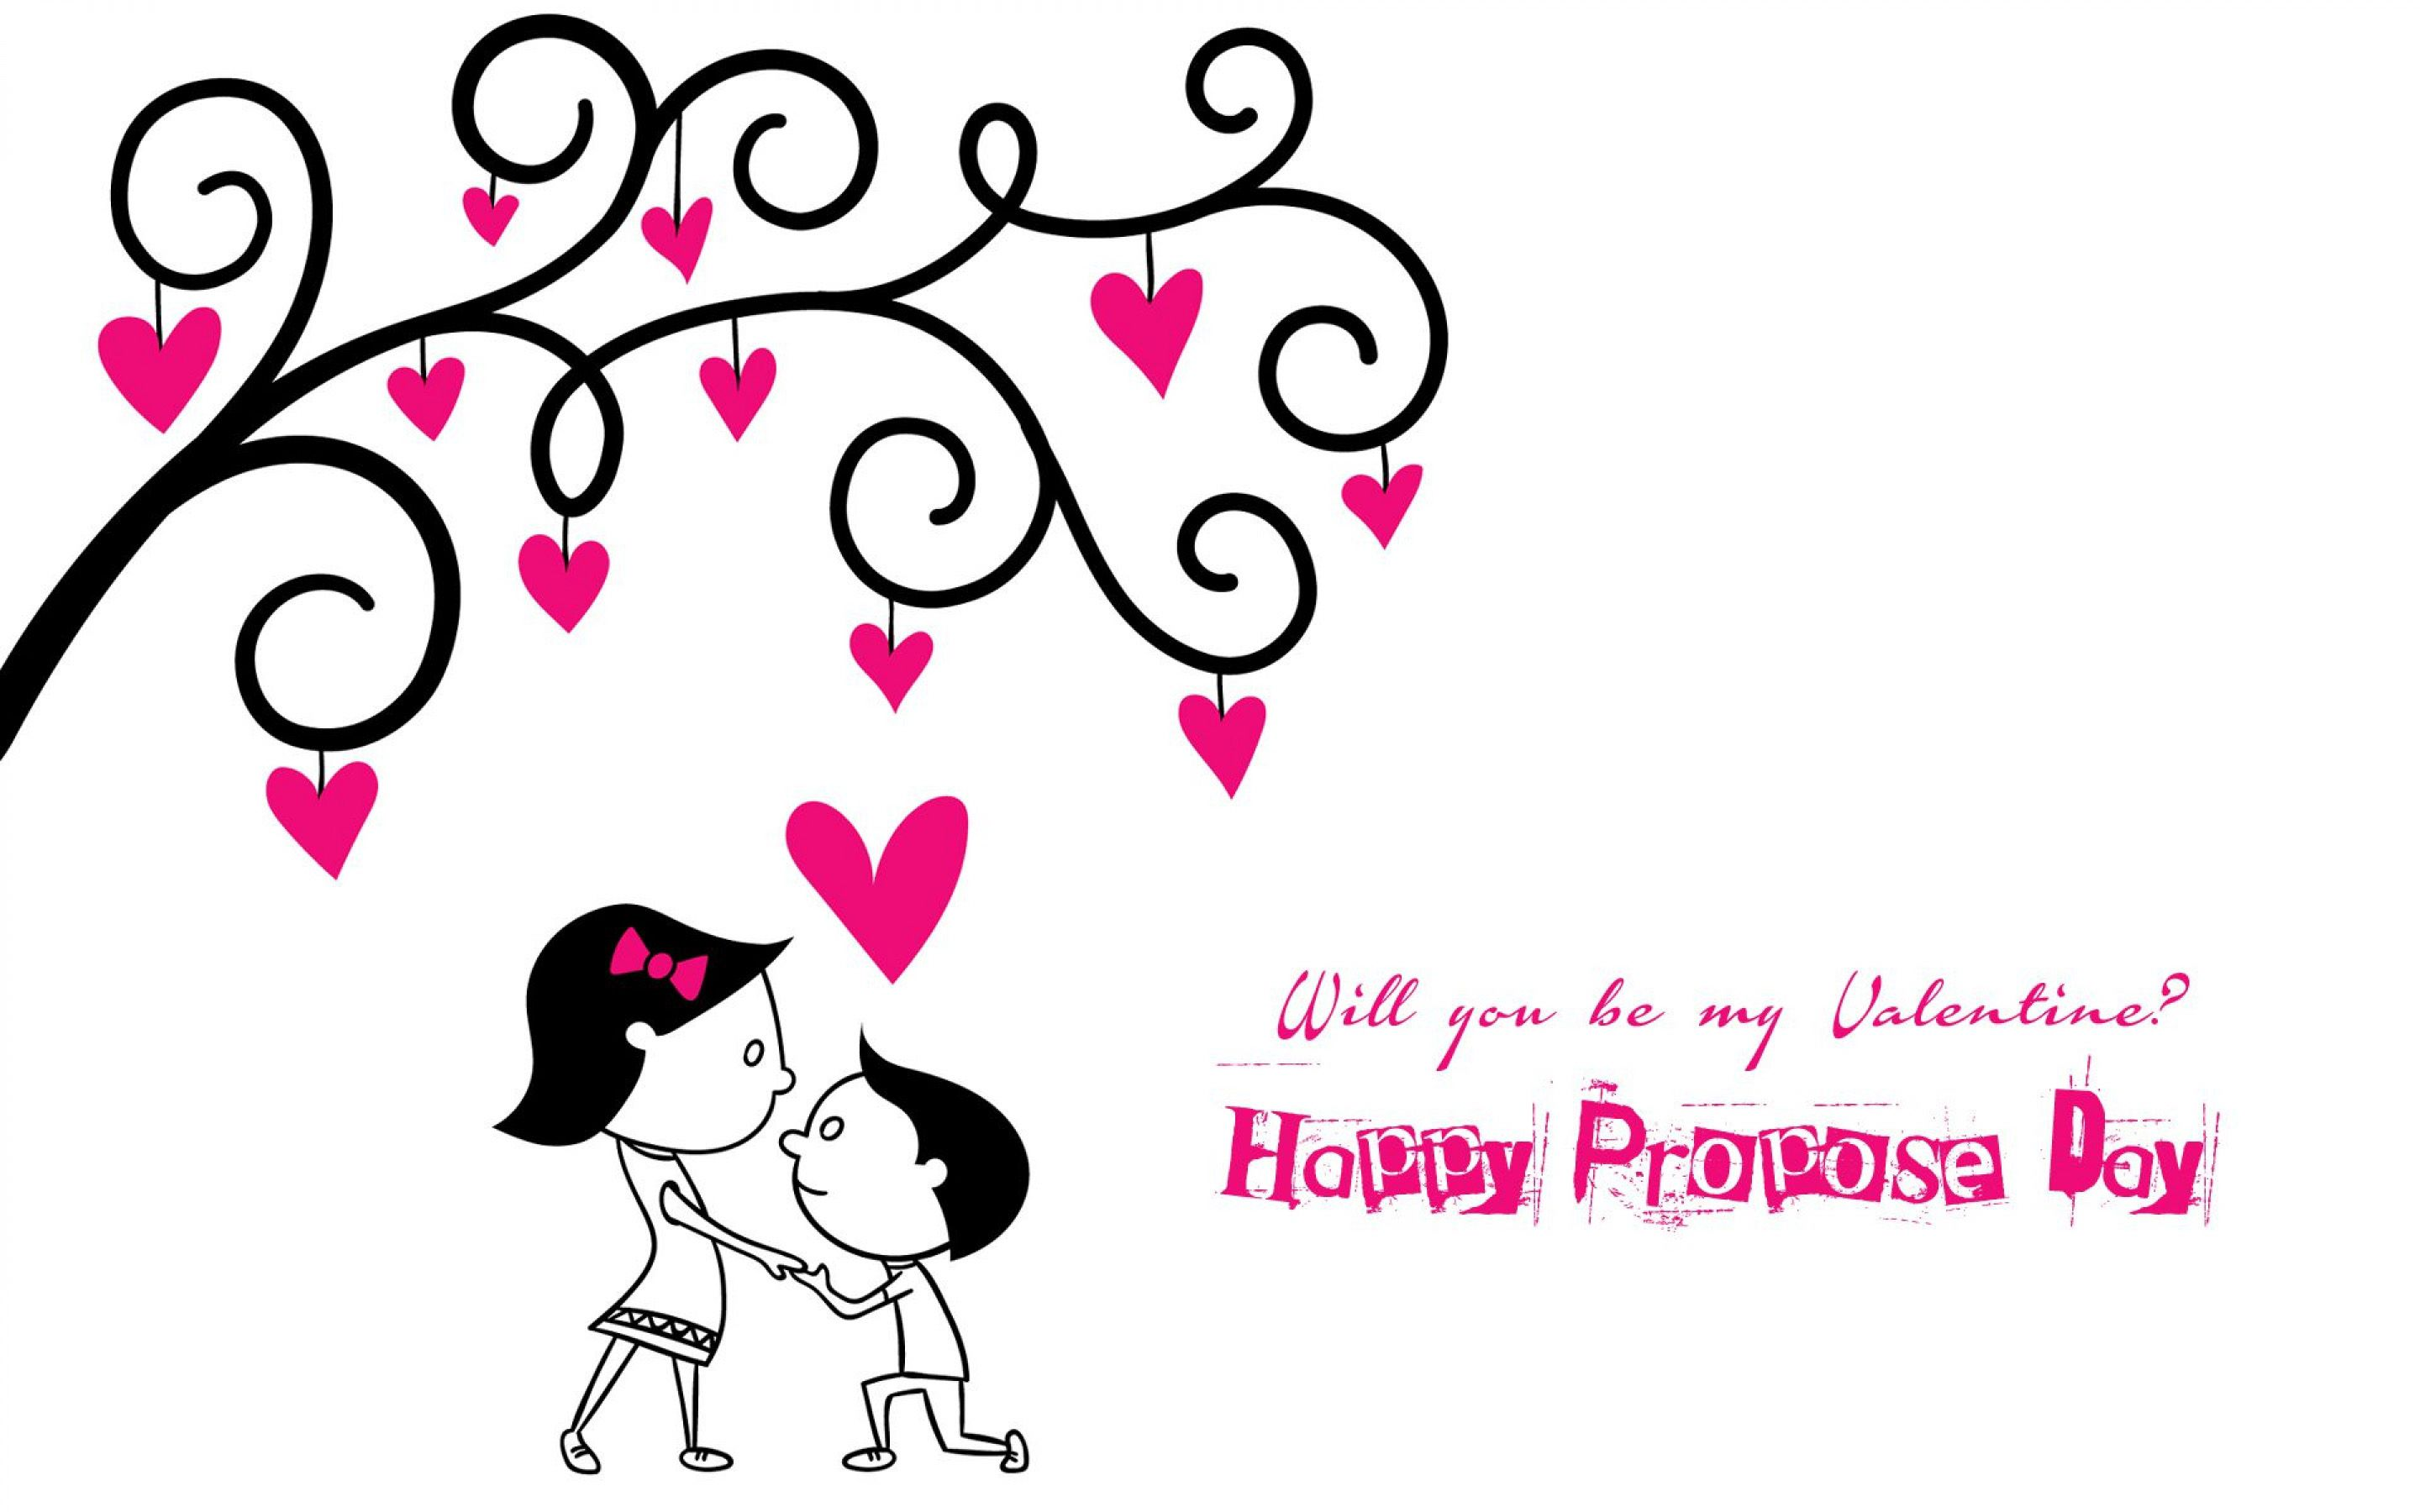 Happy Propose Day Rose Desktop PC Hd Wallpapers